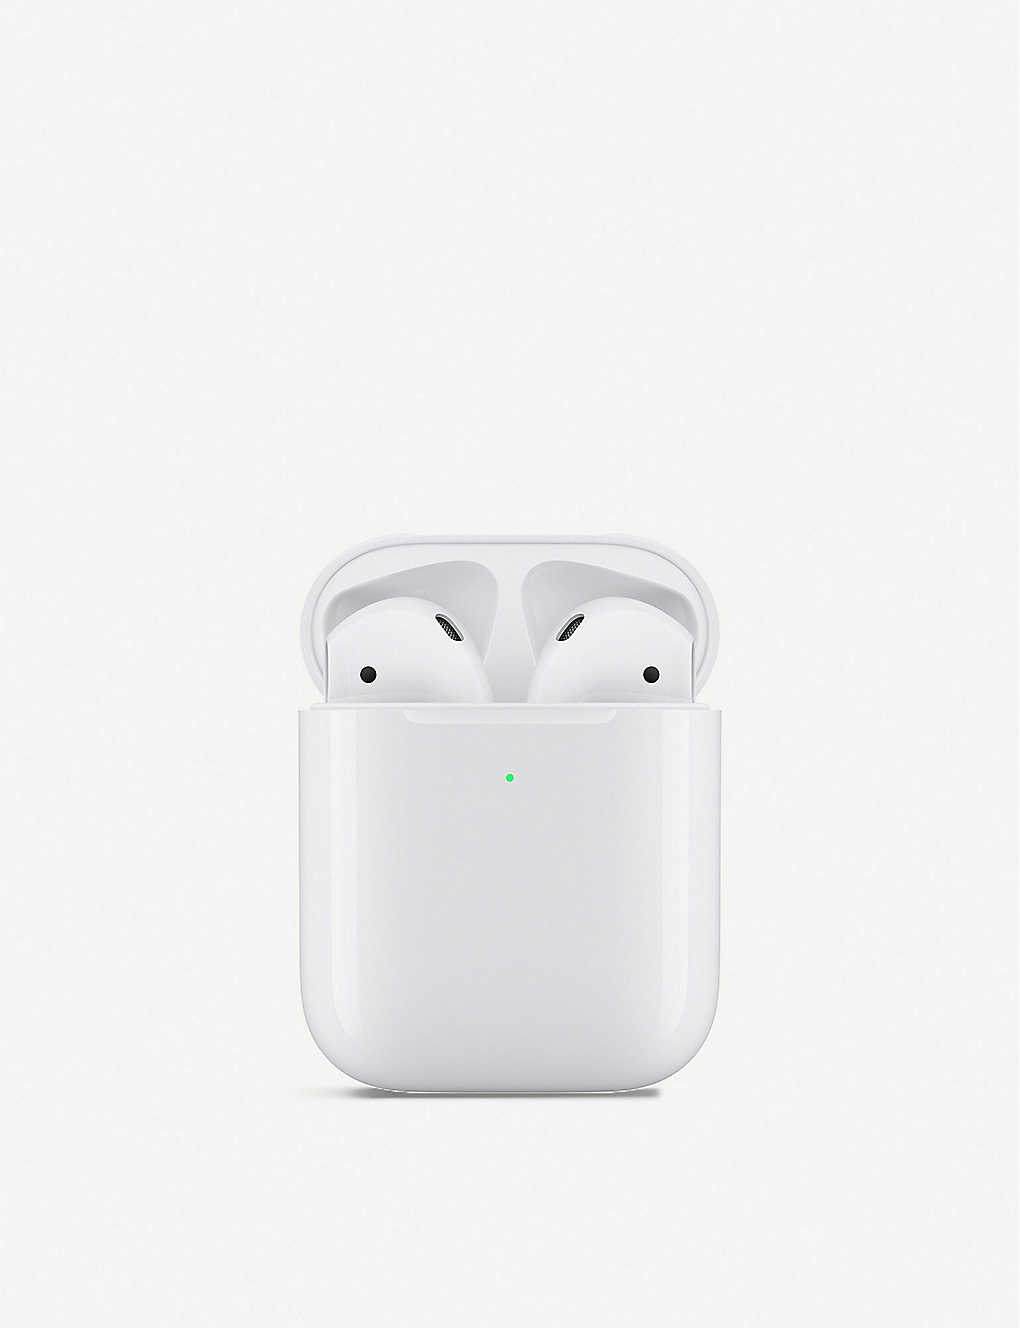 online store 7bbf3 414f2 AirPods with Wireless Charging Case